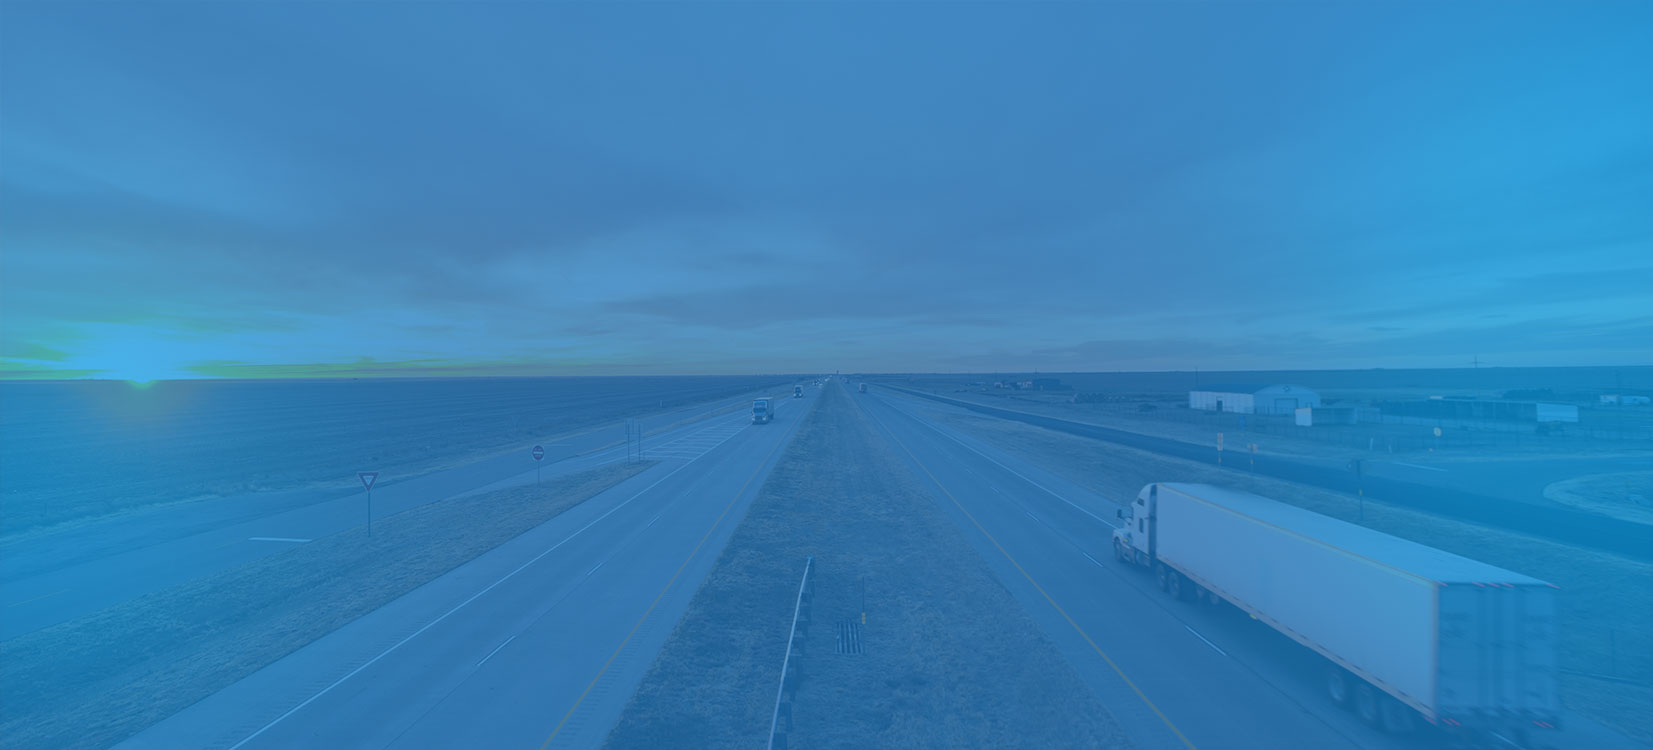 https://www.crlease.com/sites/default/files/revslider/image/highway-sunset-blue.jpg